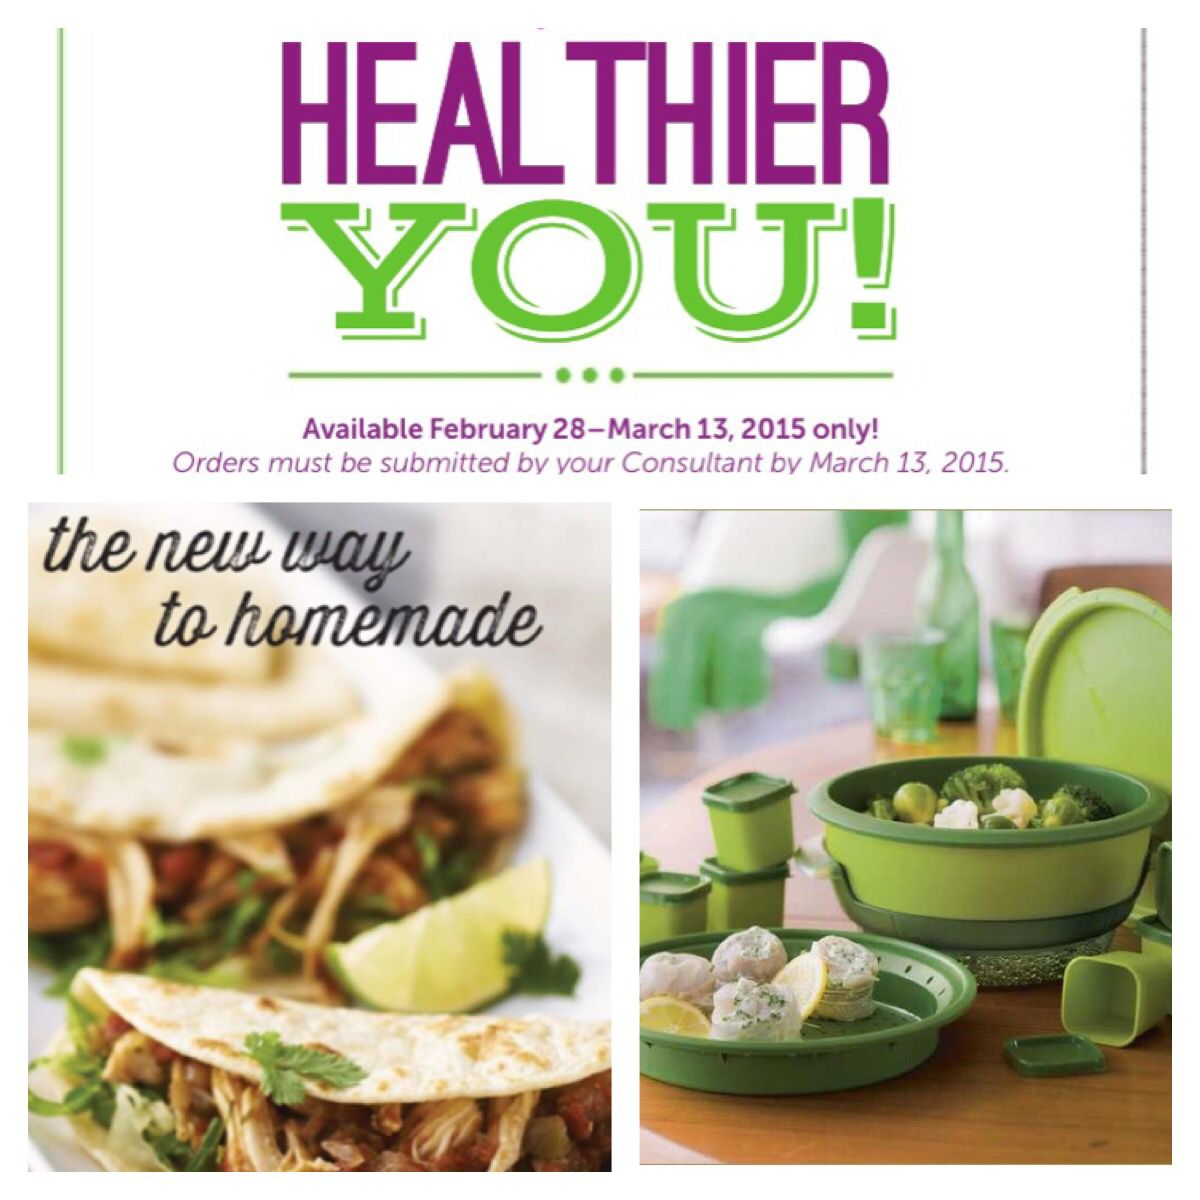 Loving Tupperware your health and Tupperware parties!